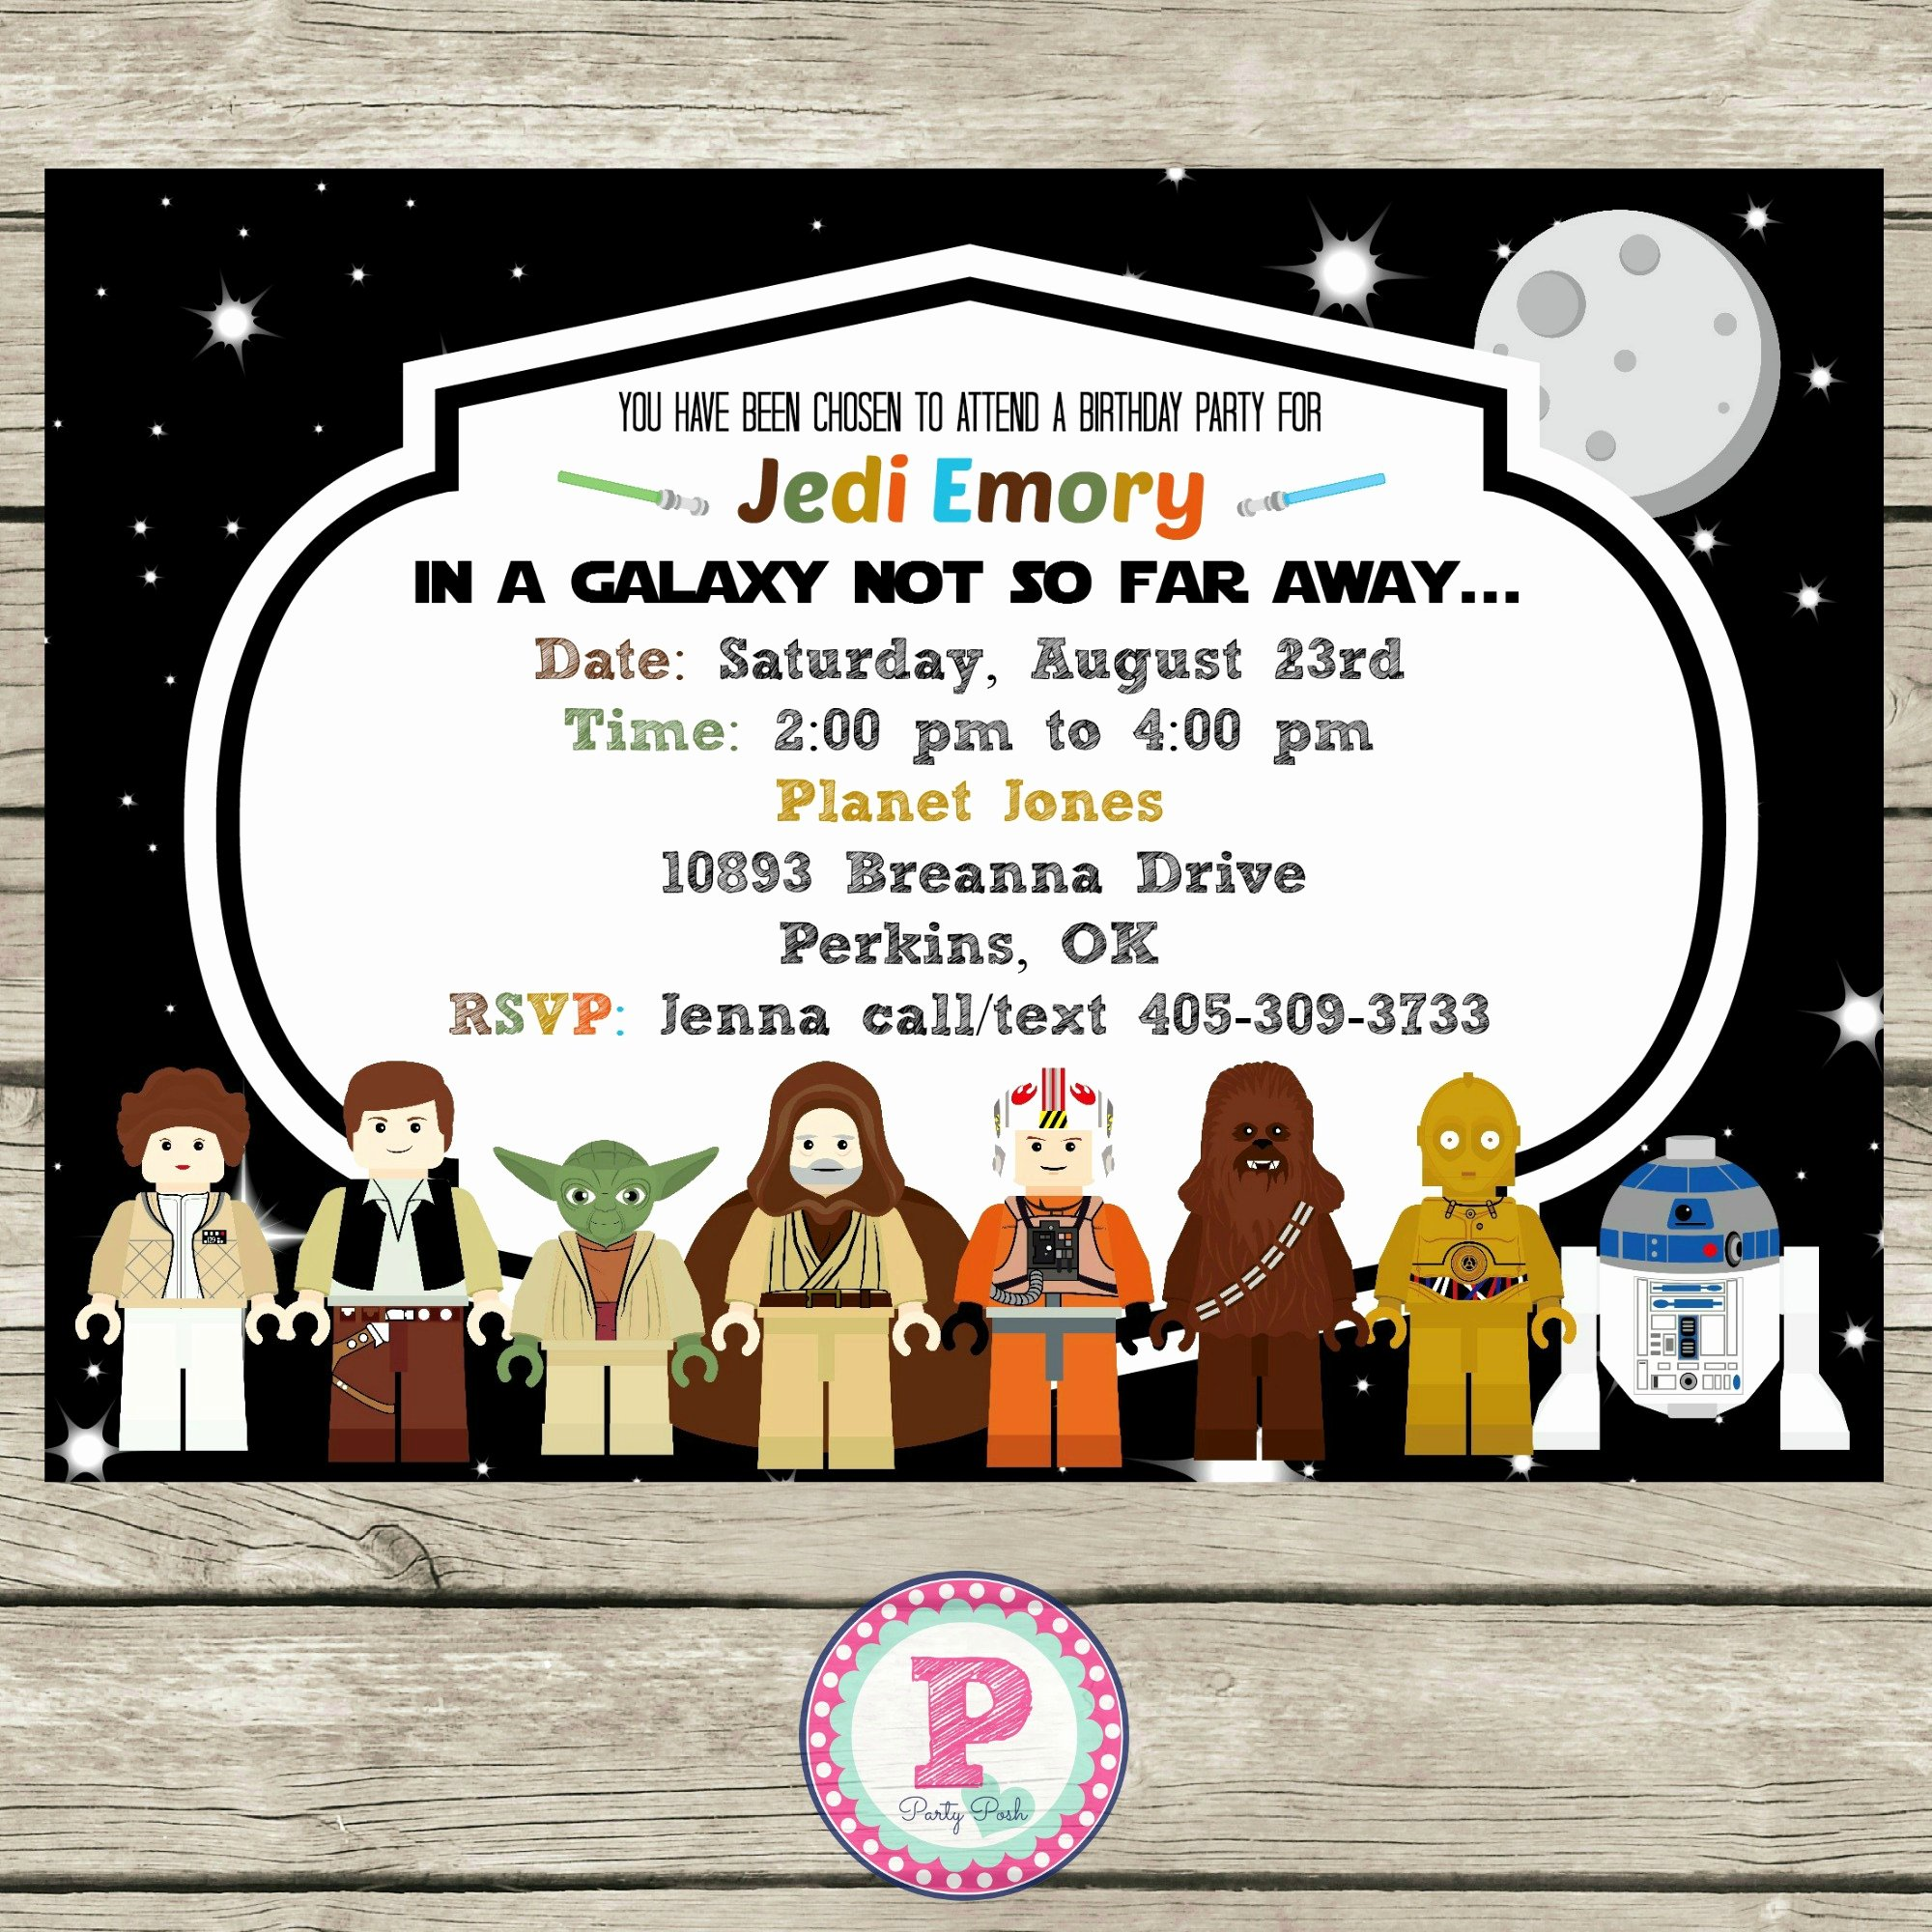 Star Wars Printable Birthday Invitations Beautiful Star Wars Lego Birthday Party Ideas Invitations